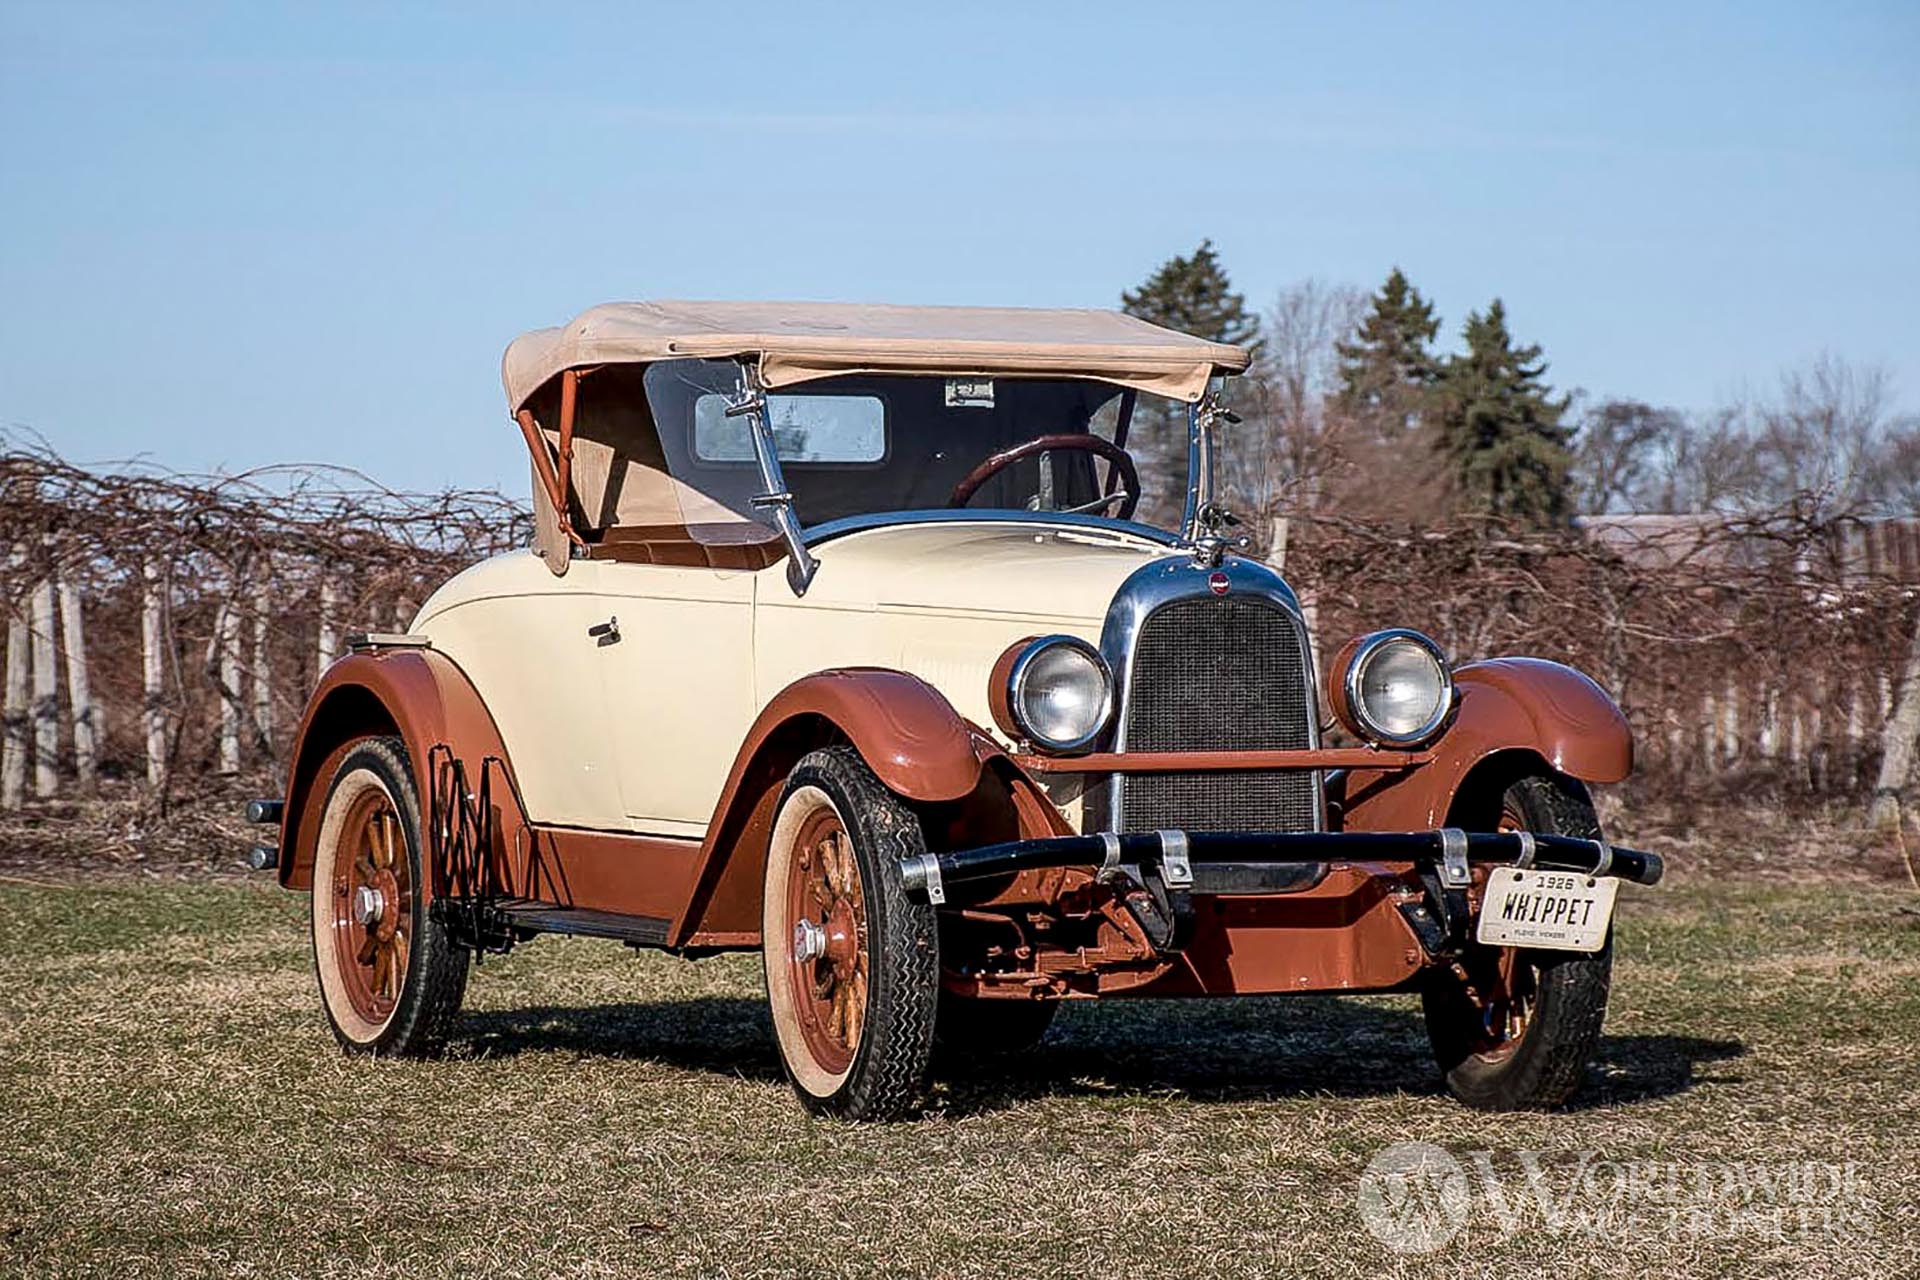 1926 Whippet Model 96 Rumbleseat Roadster